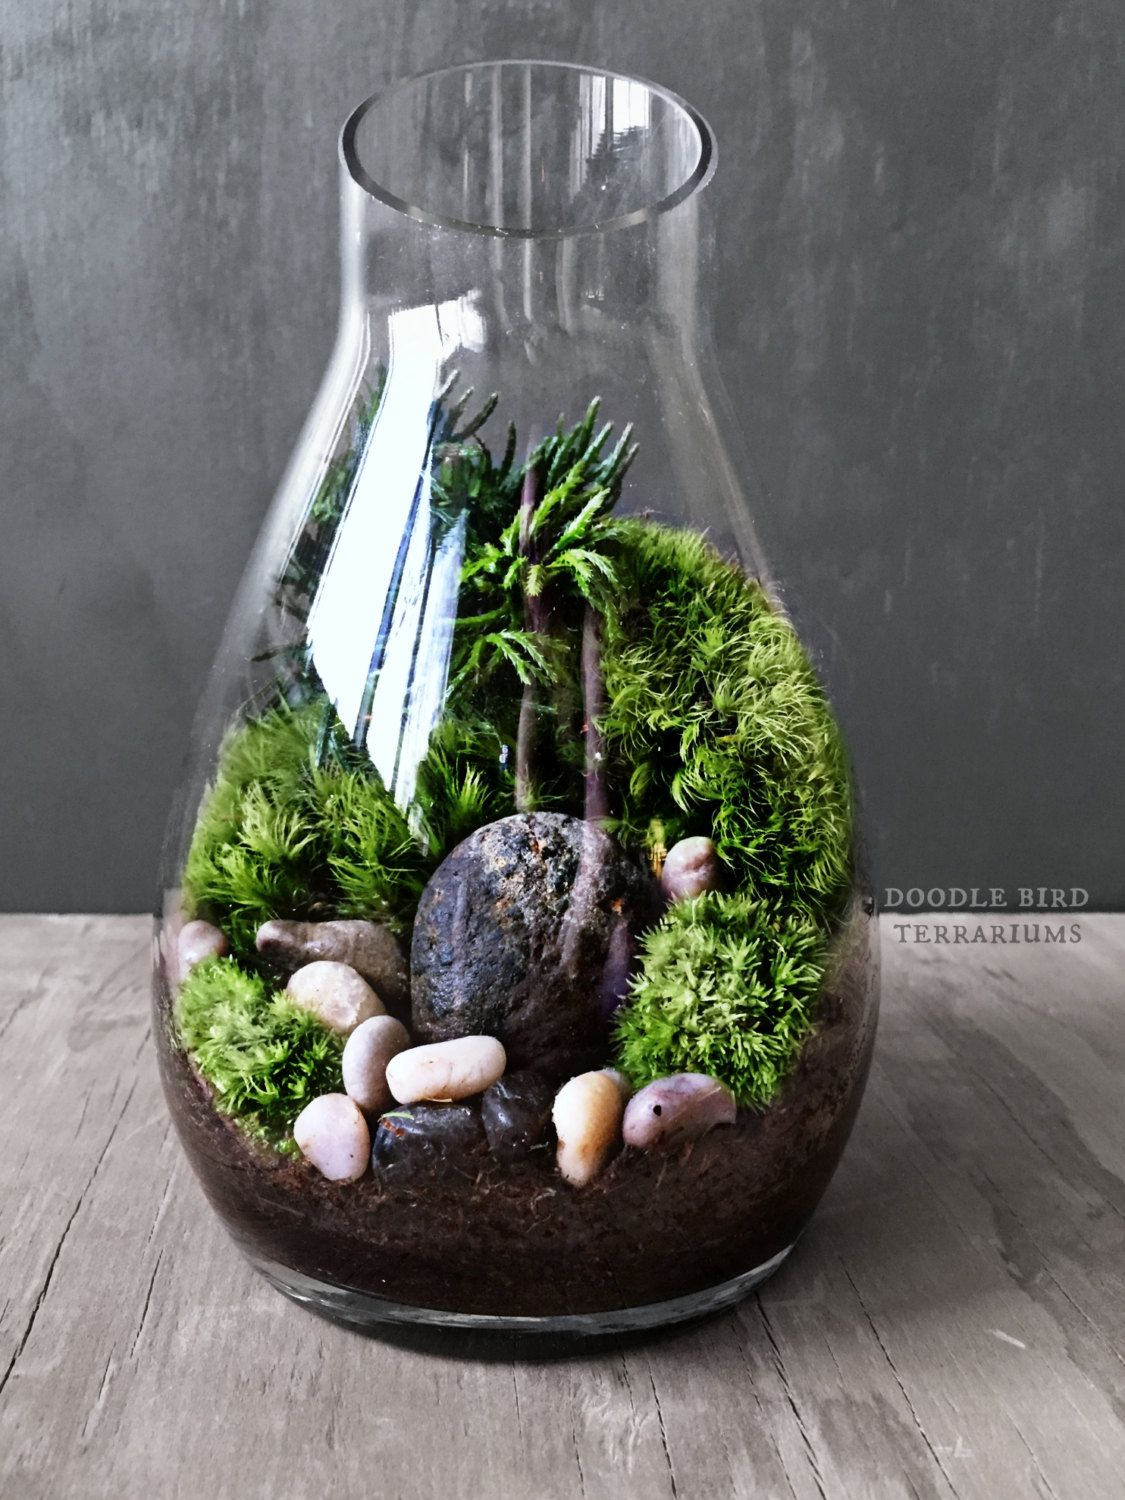 carafe moss terrarium gift set live houseplants office decor miniature garden under glass by. Black Bedroom Furniture Sets. Home Design Ideas